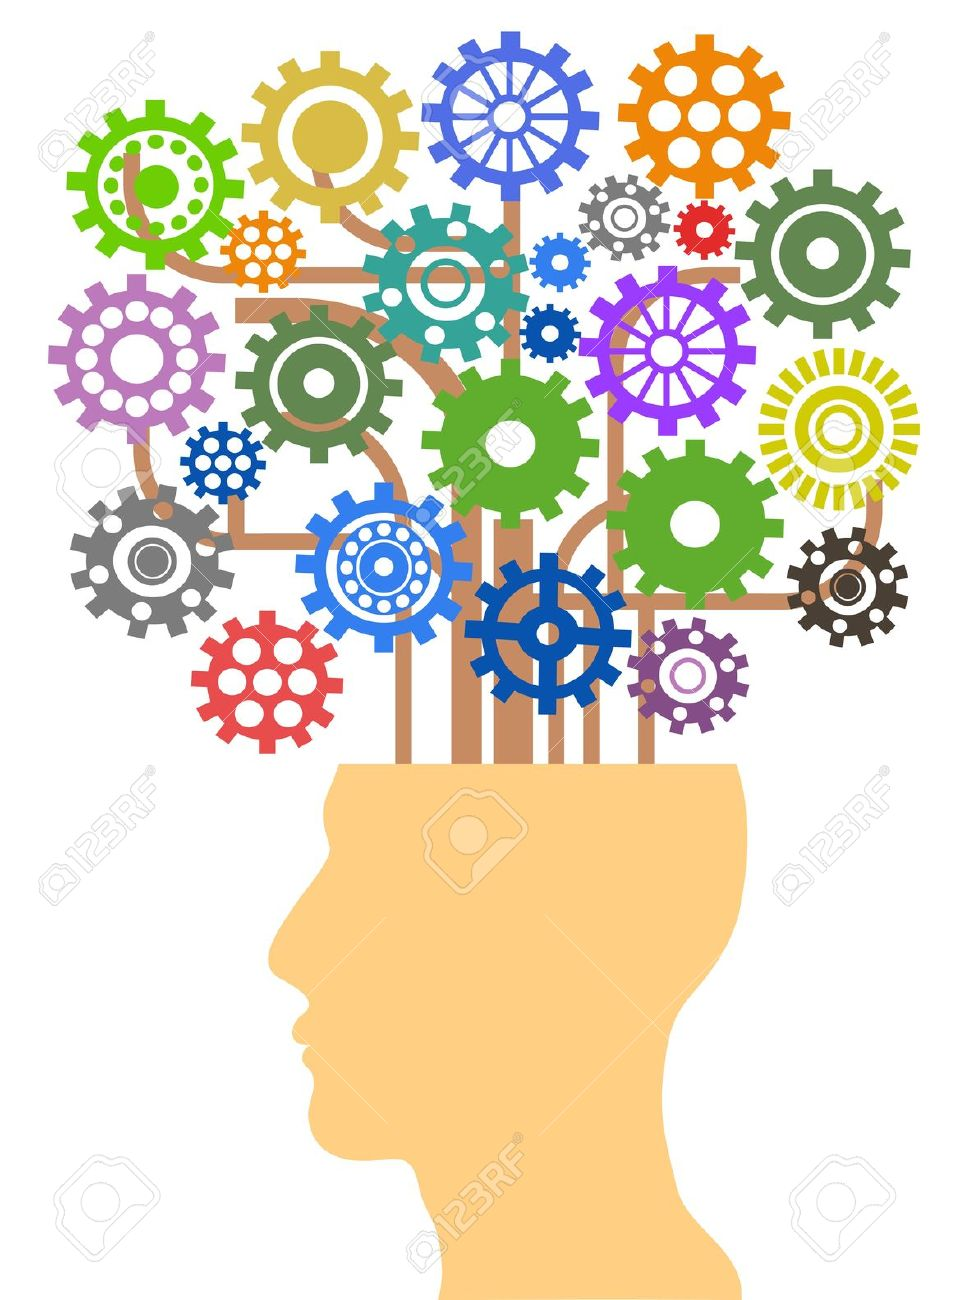 The Concept Of Head With Gear Tree Royalty Free Cliparts, Vectors.